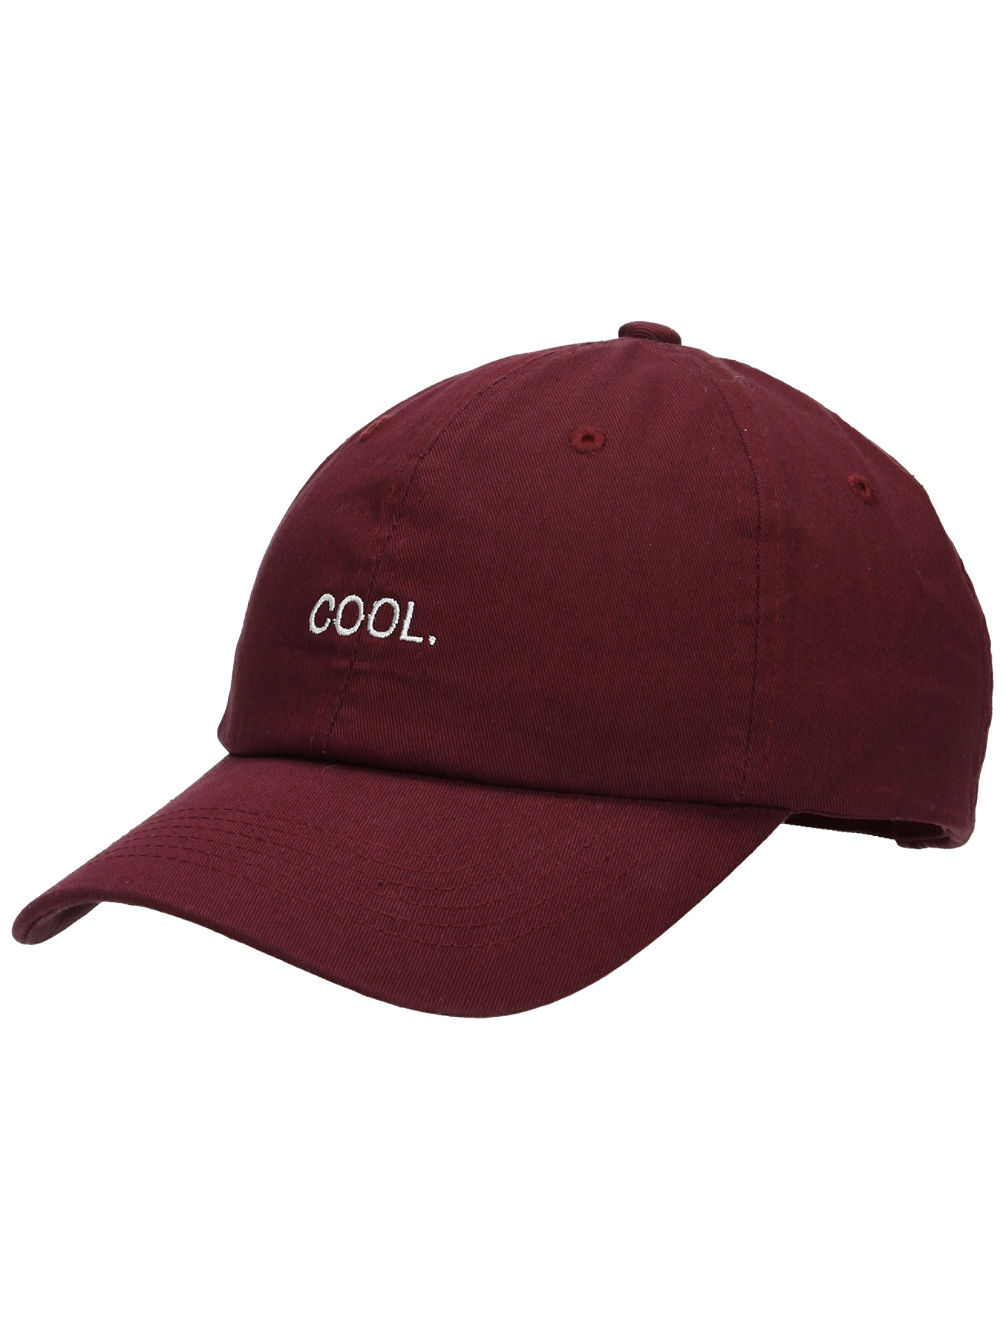 Solstice Cool Dad Cap